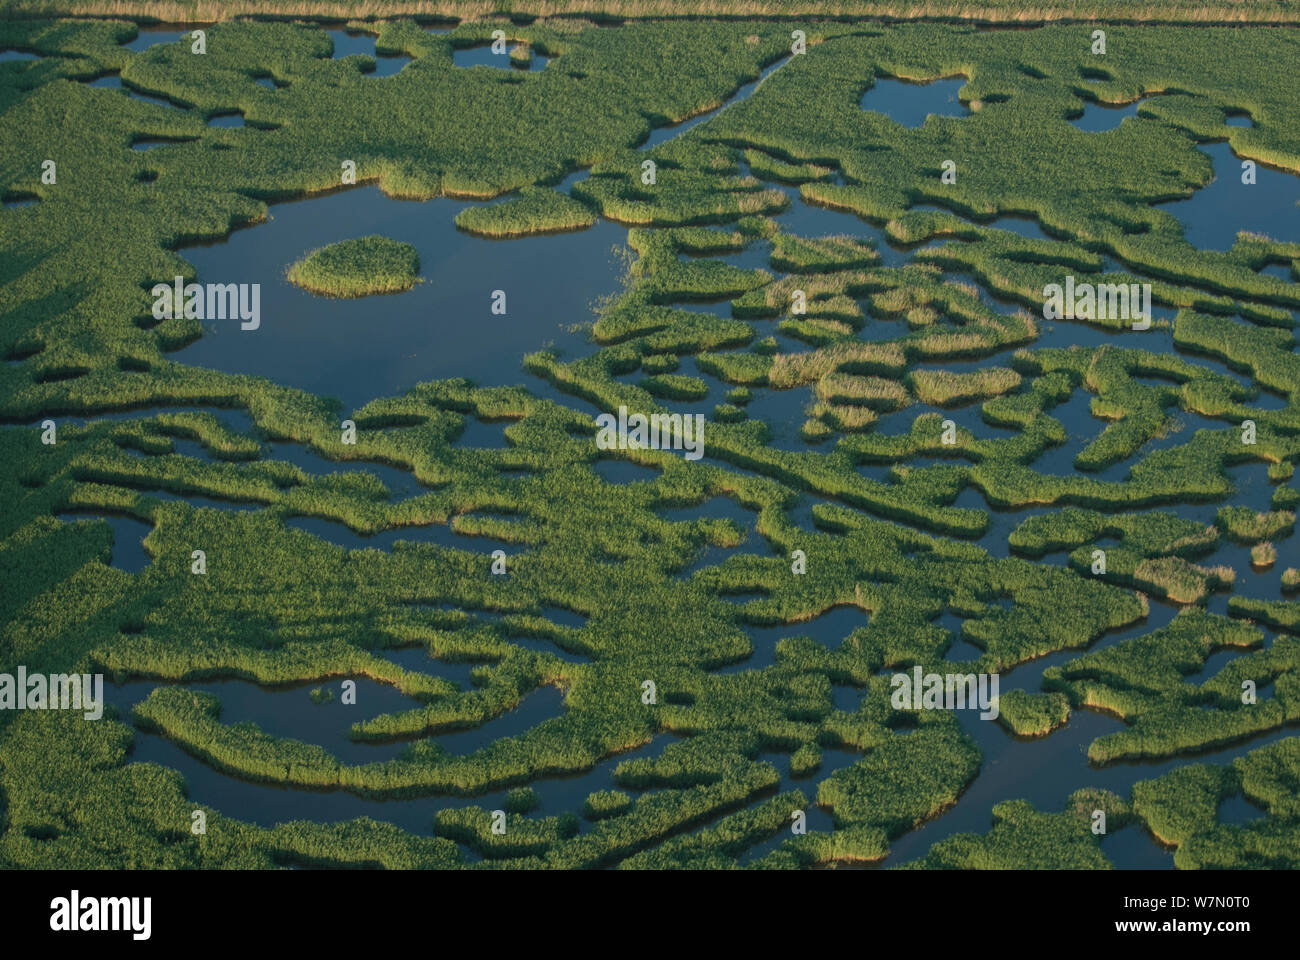 Aerial view of open reedbeds for hunting waterfowl, Camargue, Southern France, June 2007 Stock Photo